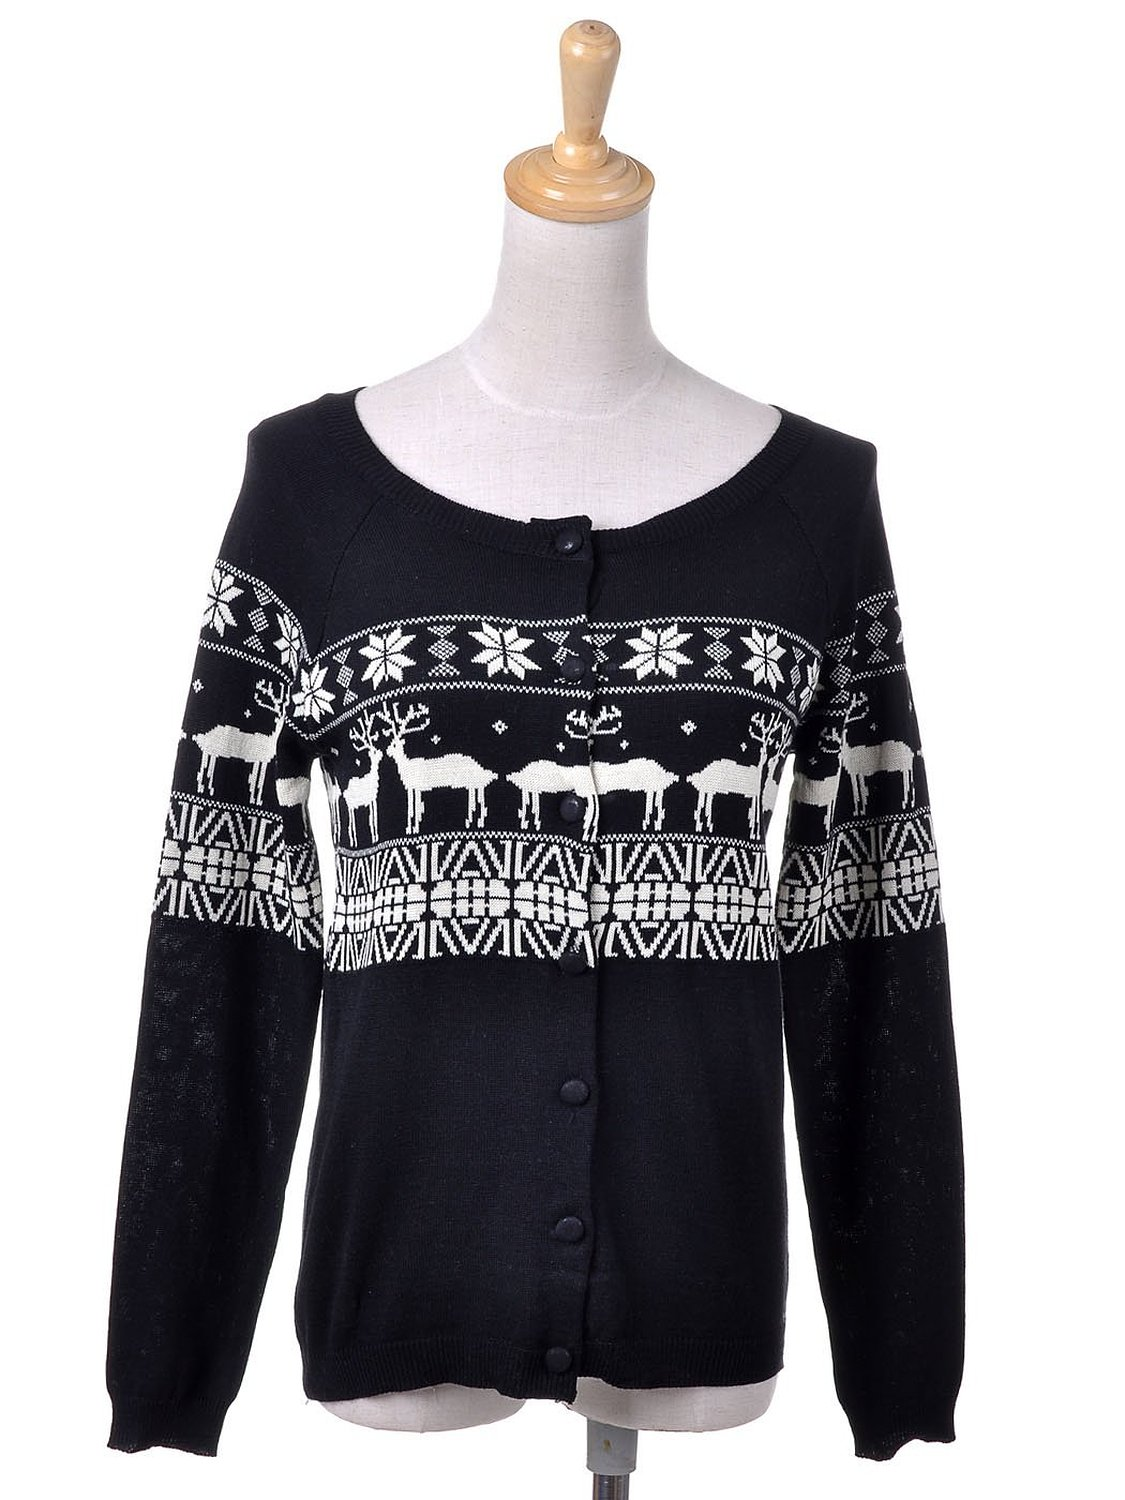 Kaci S/M Fit Black Reindeer Love Snowflakes Button Up Cardigan ...